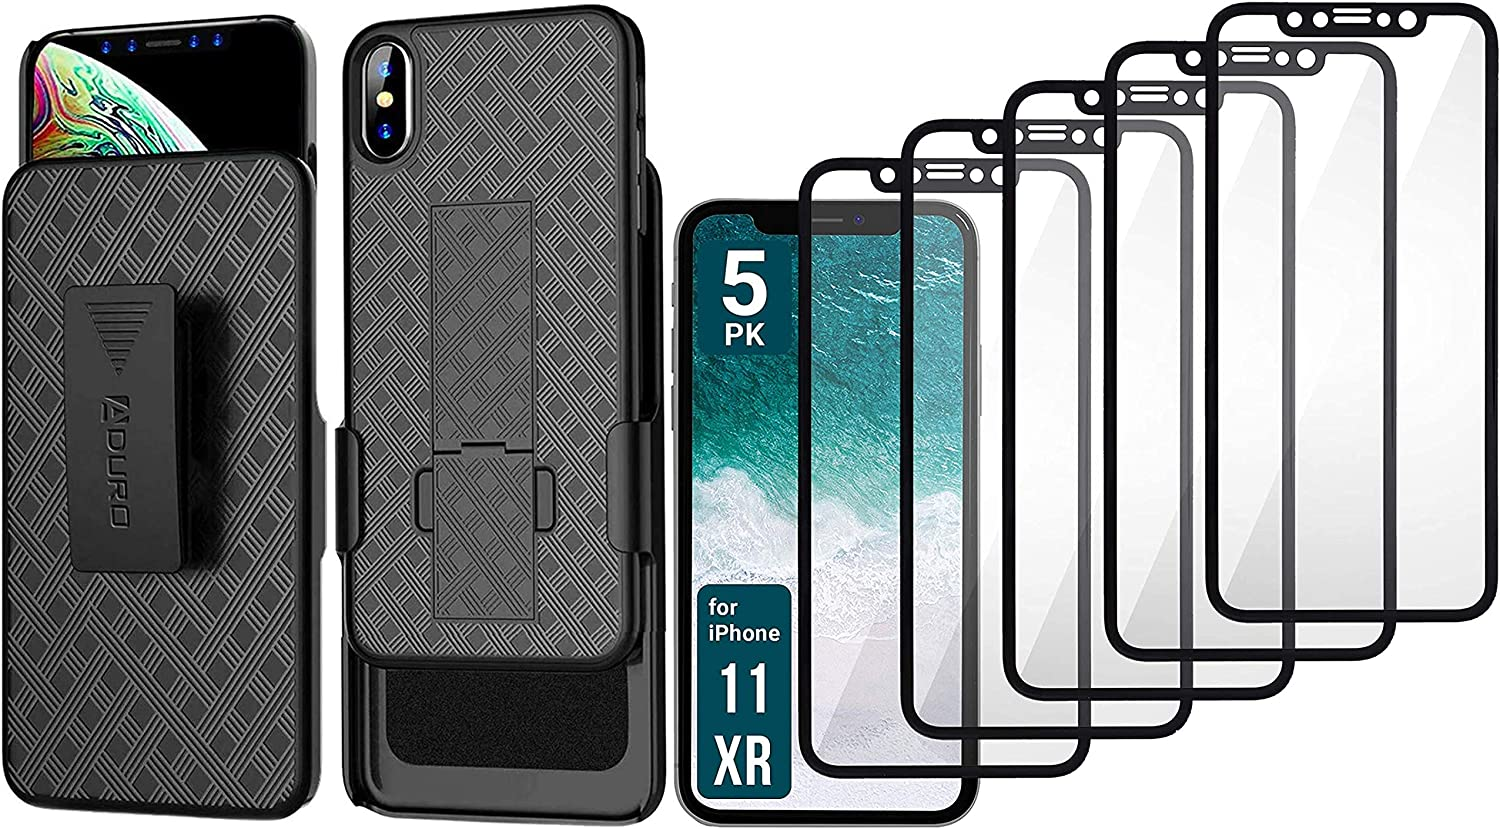 Aduro iPhone XR Holster Case & Screen Protector for Apple iPhone XR/10R Bundle Combo Shell & Holster Case Swivel Belt Clip with Kickstand Plus 5-Pack Shatterguardz Tempered Glass